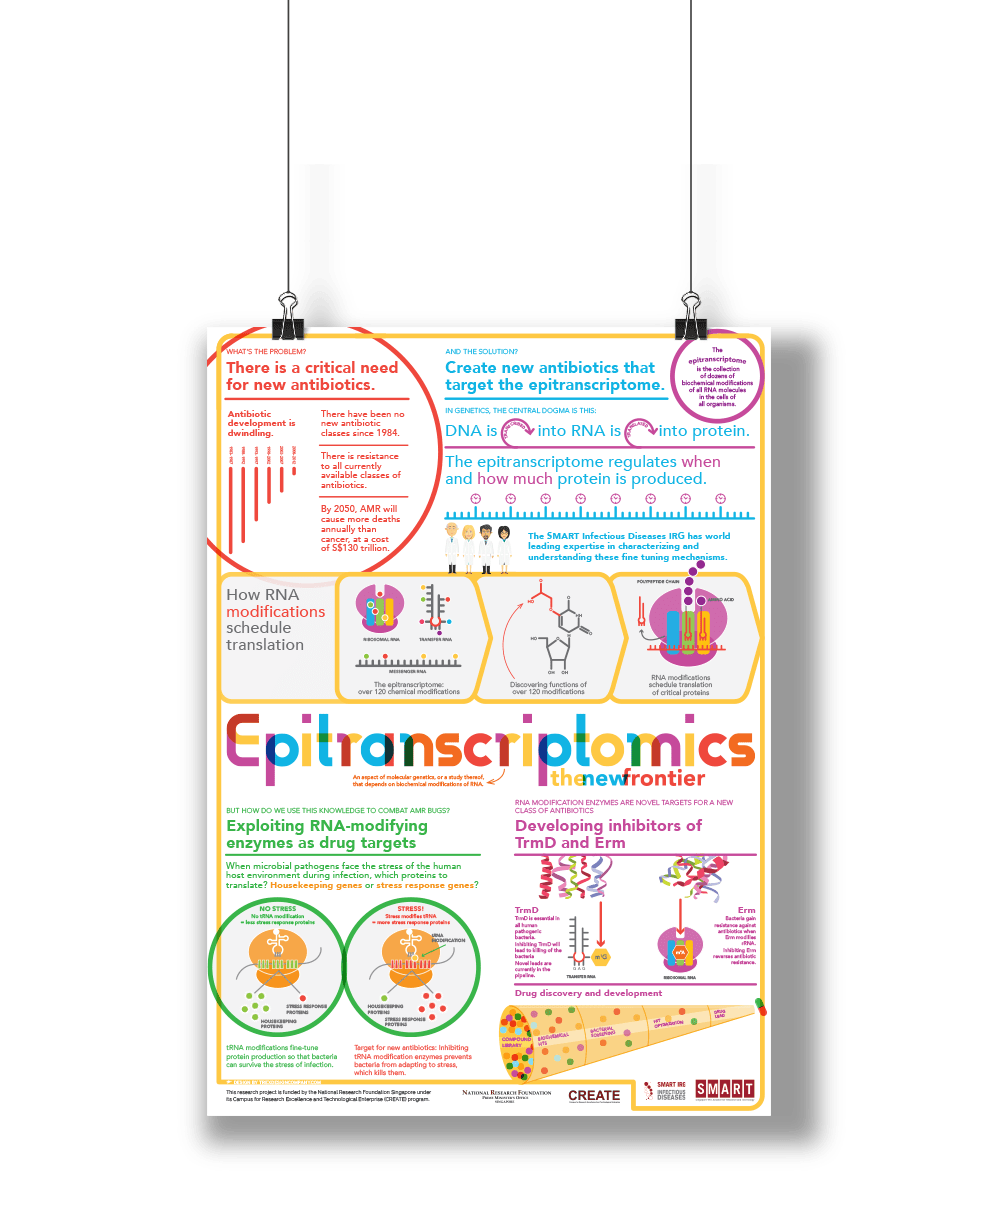 Epitranscriptomics